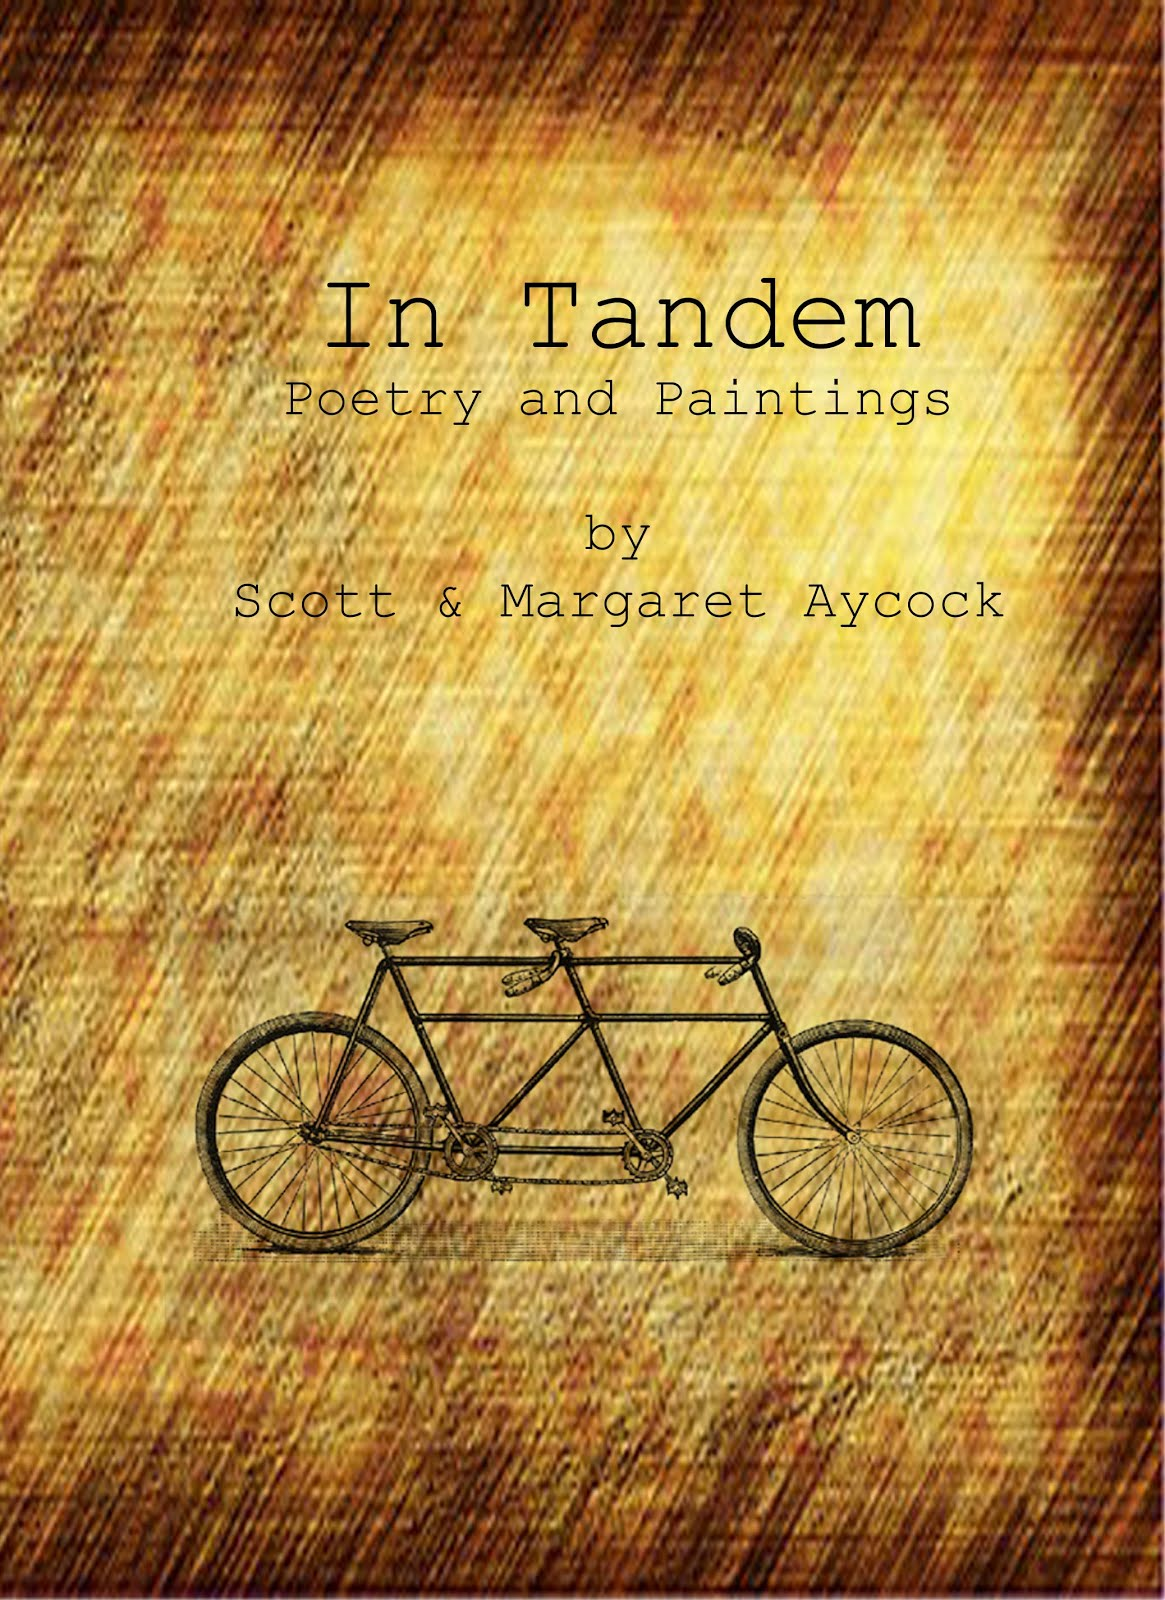 In Tandem Poetry and Paintings